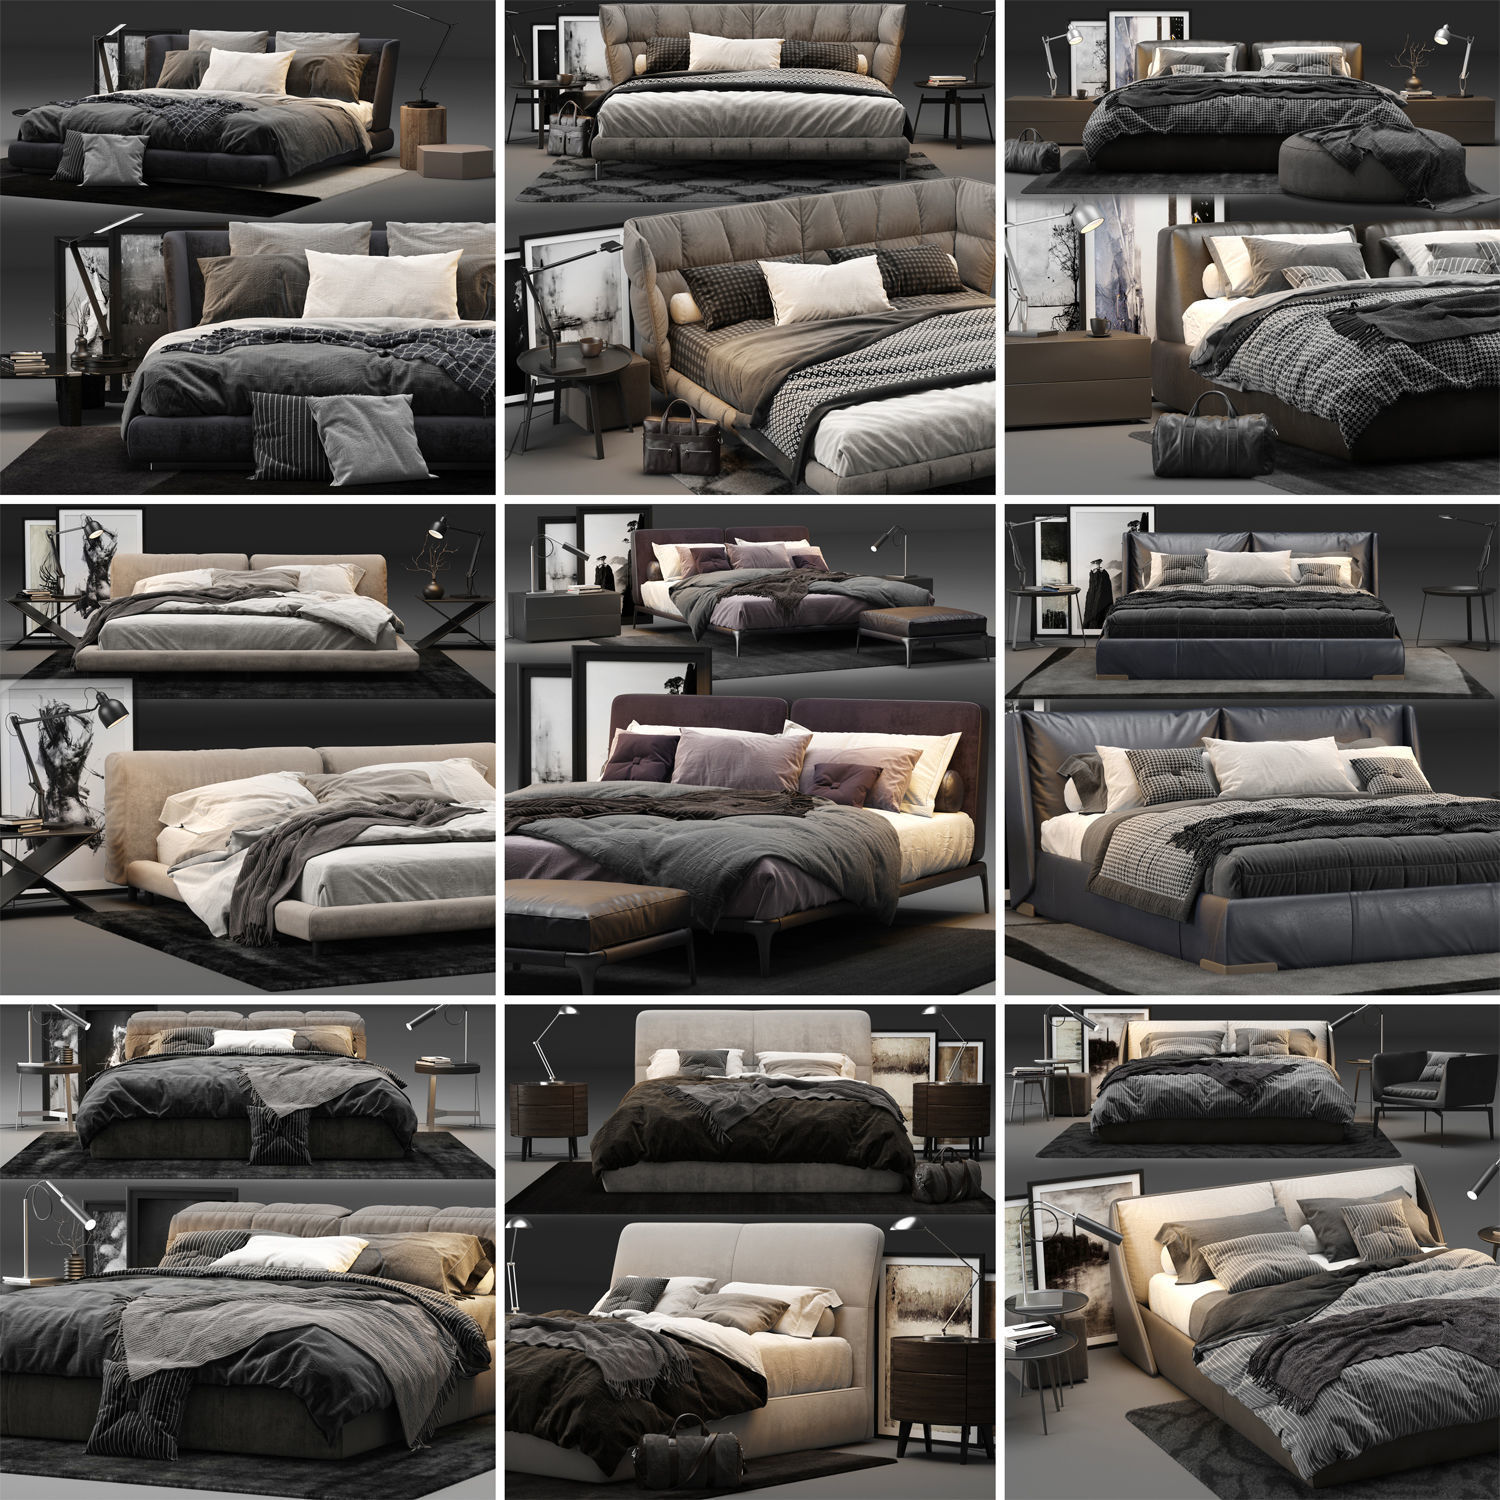 Bed Colection 01 - 10 Items